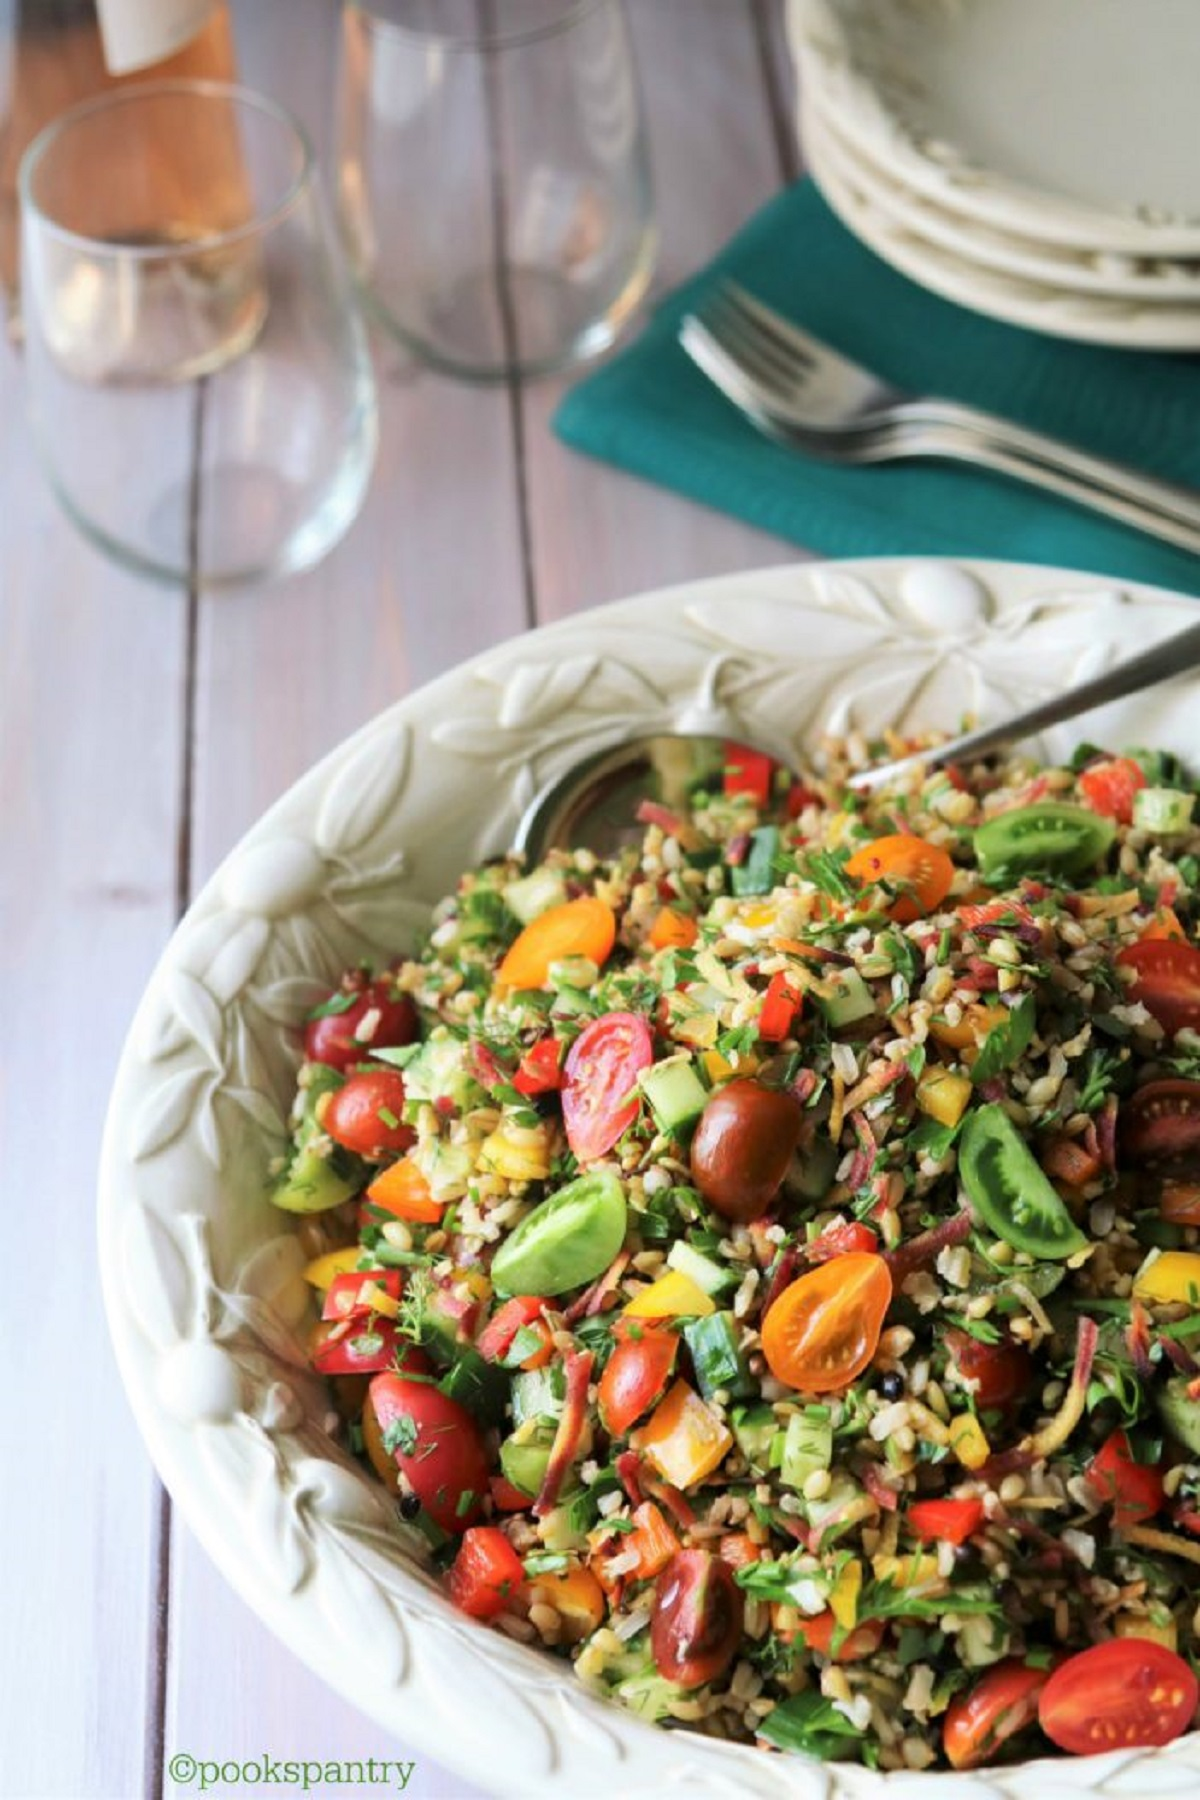 Summer grain salad with tomatoes in a large white serving bowl.